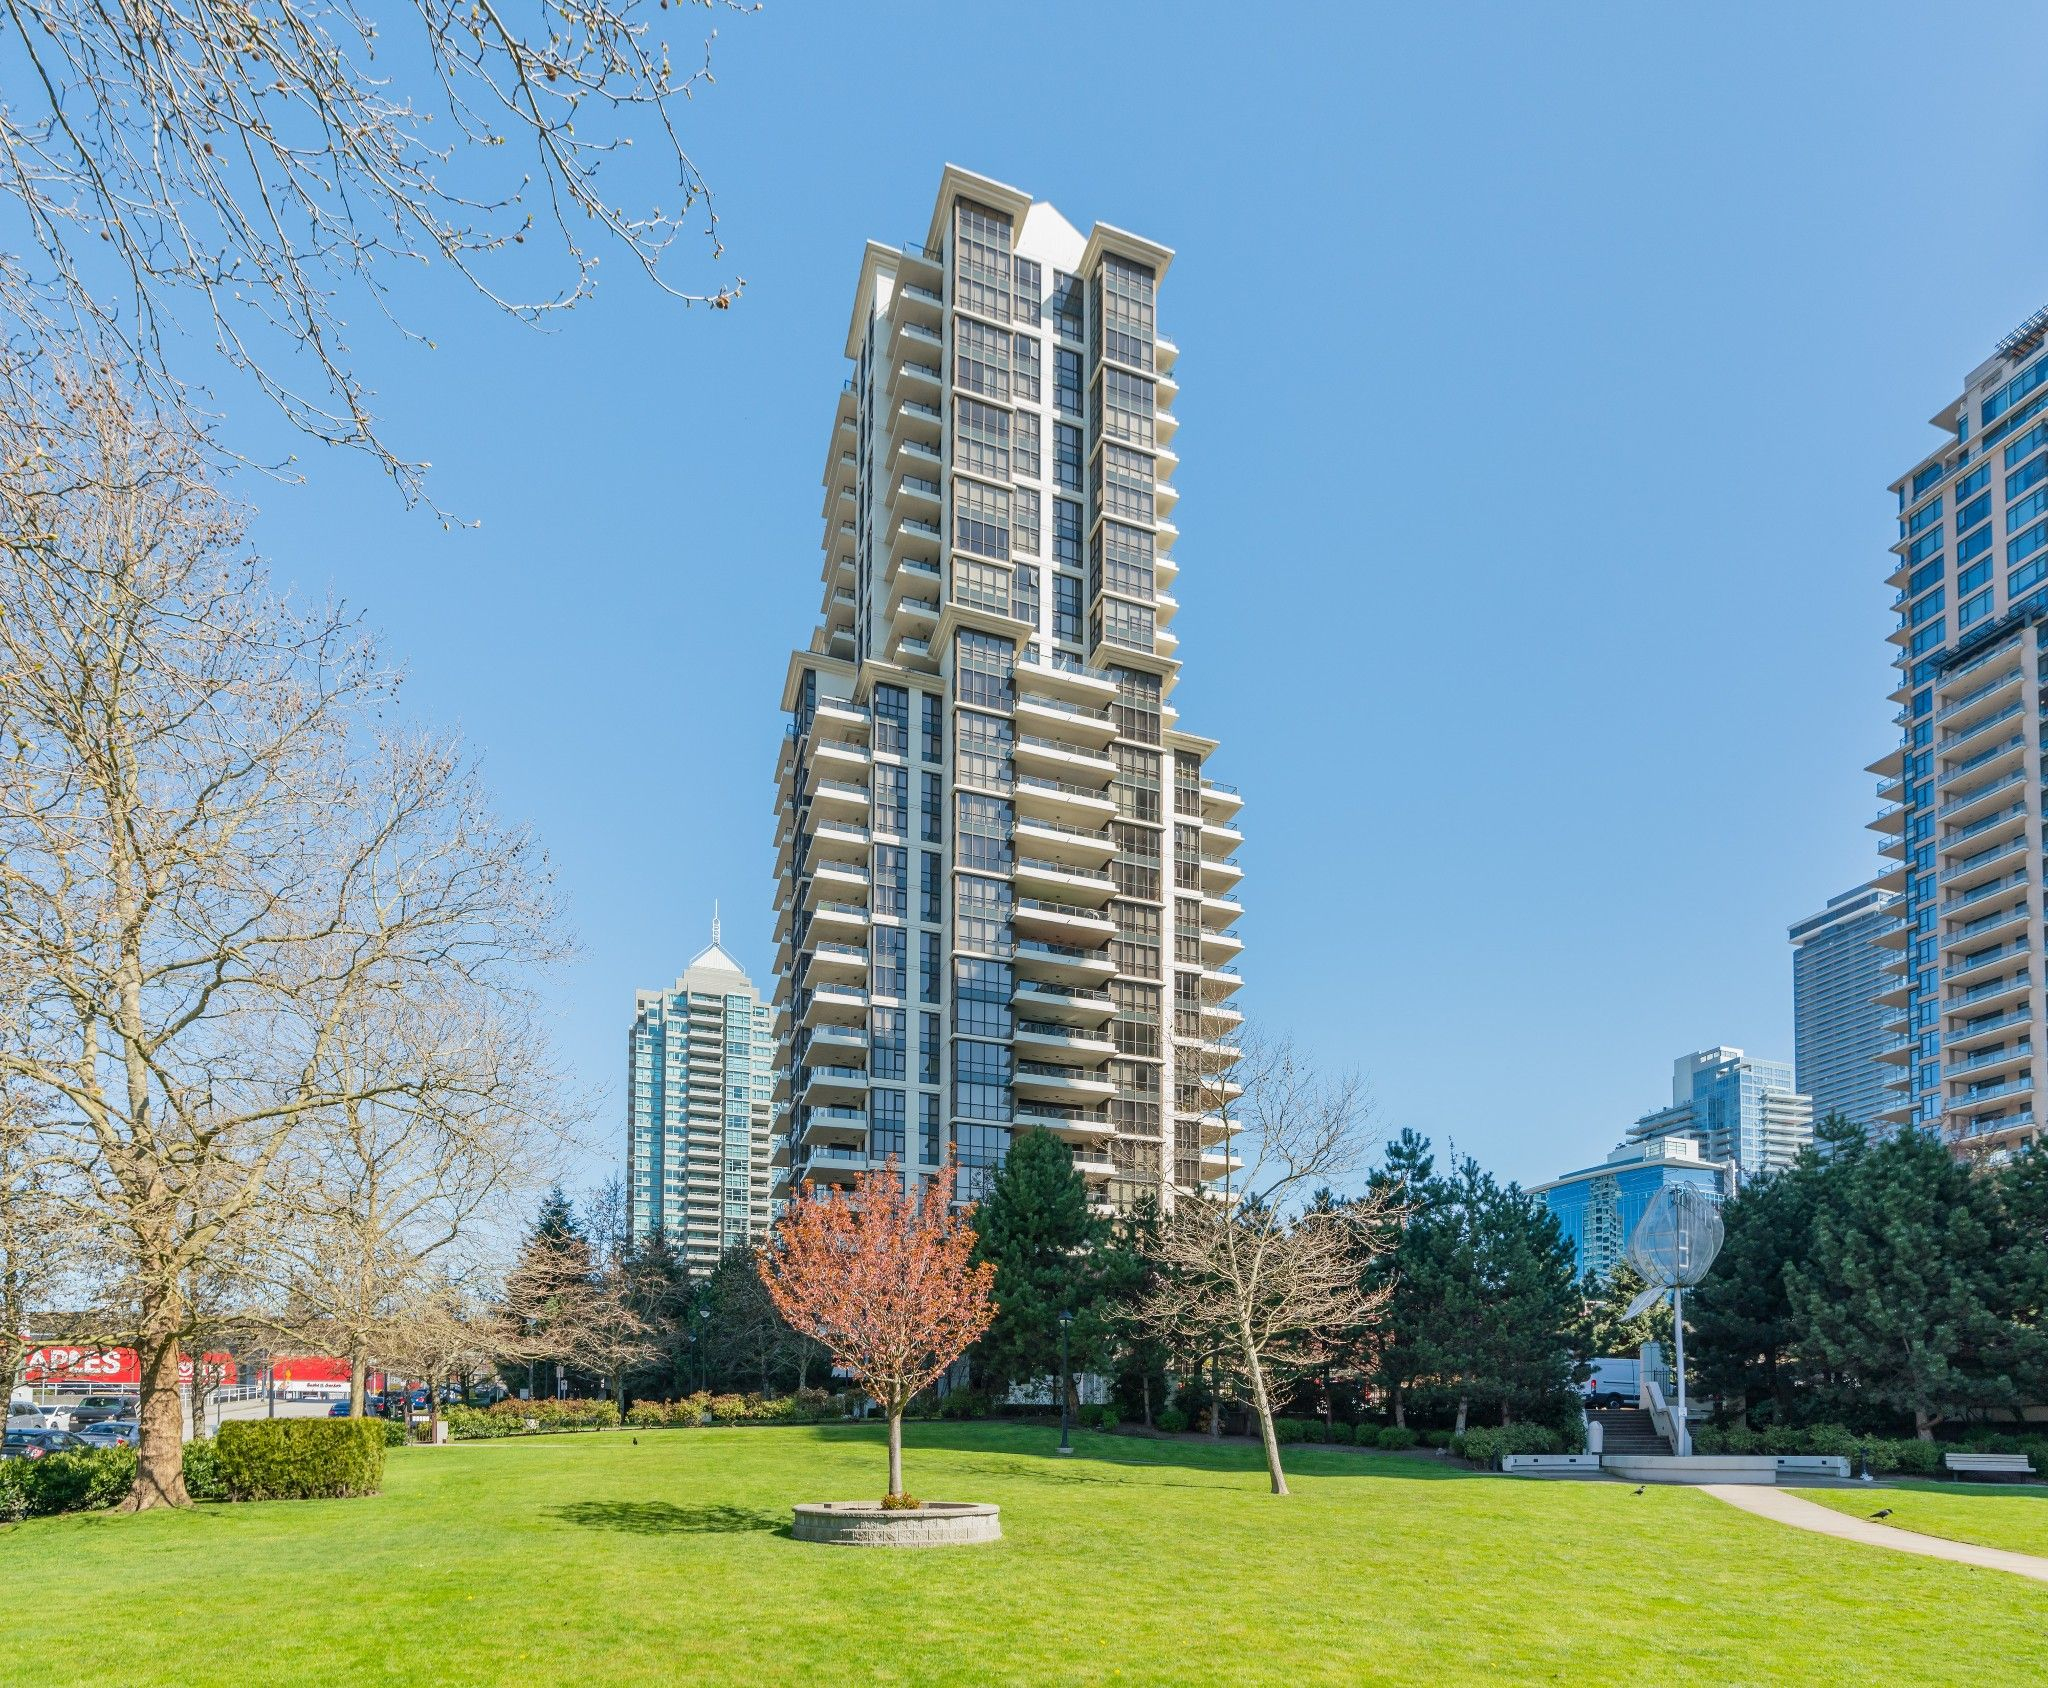 """Main Photo: #1307 - 2088 Madison Ave, in Burnaby: Brentwood Park Condo for sale in """"Renaissance Towers"""" (Burnaby North)  : MLS®# R2569418"""